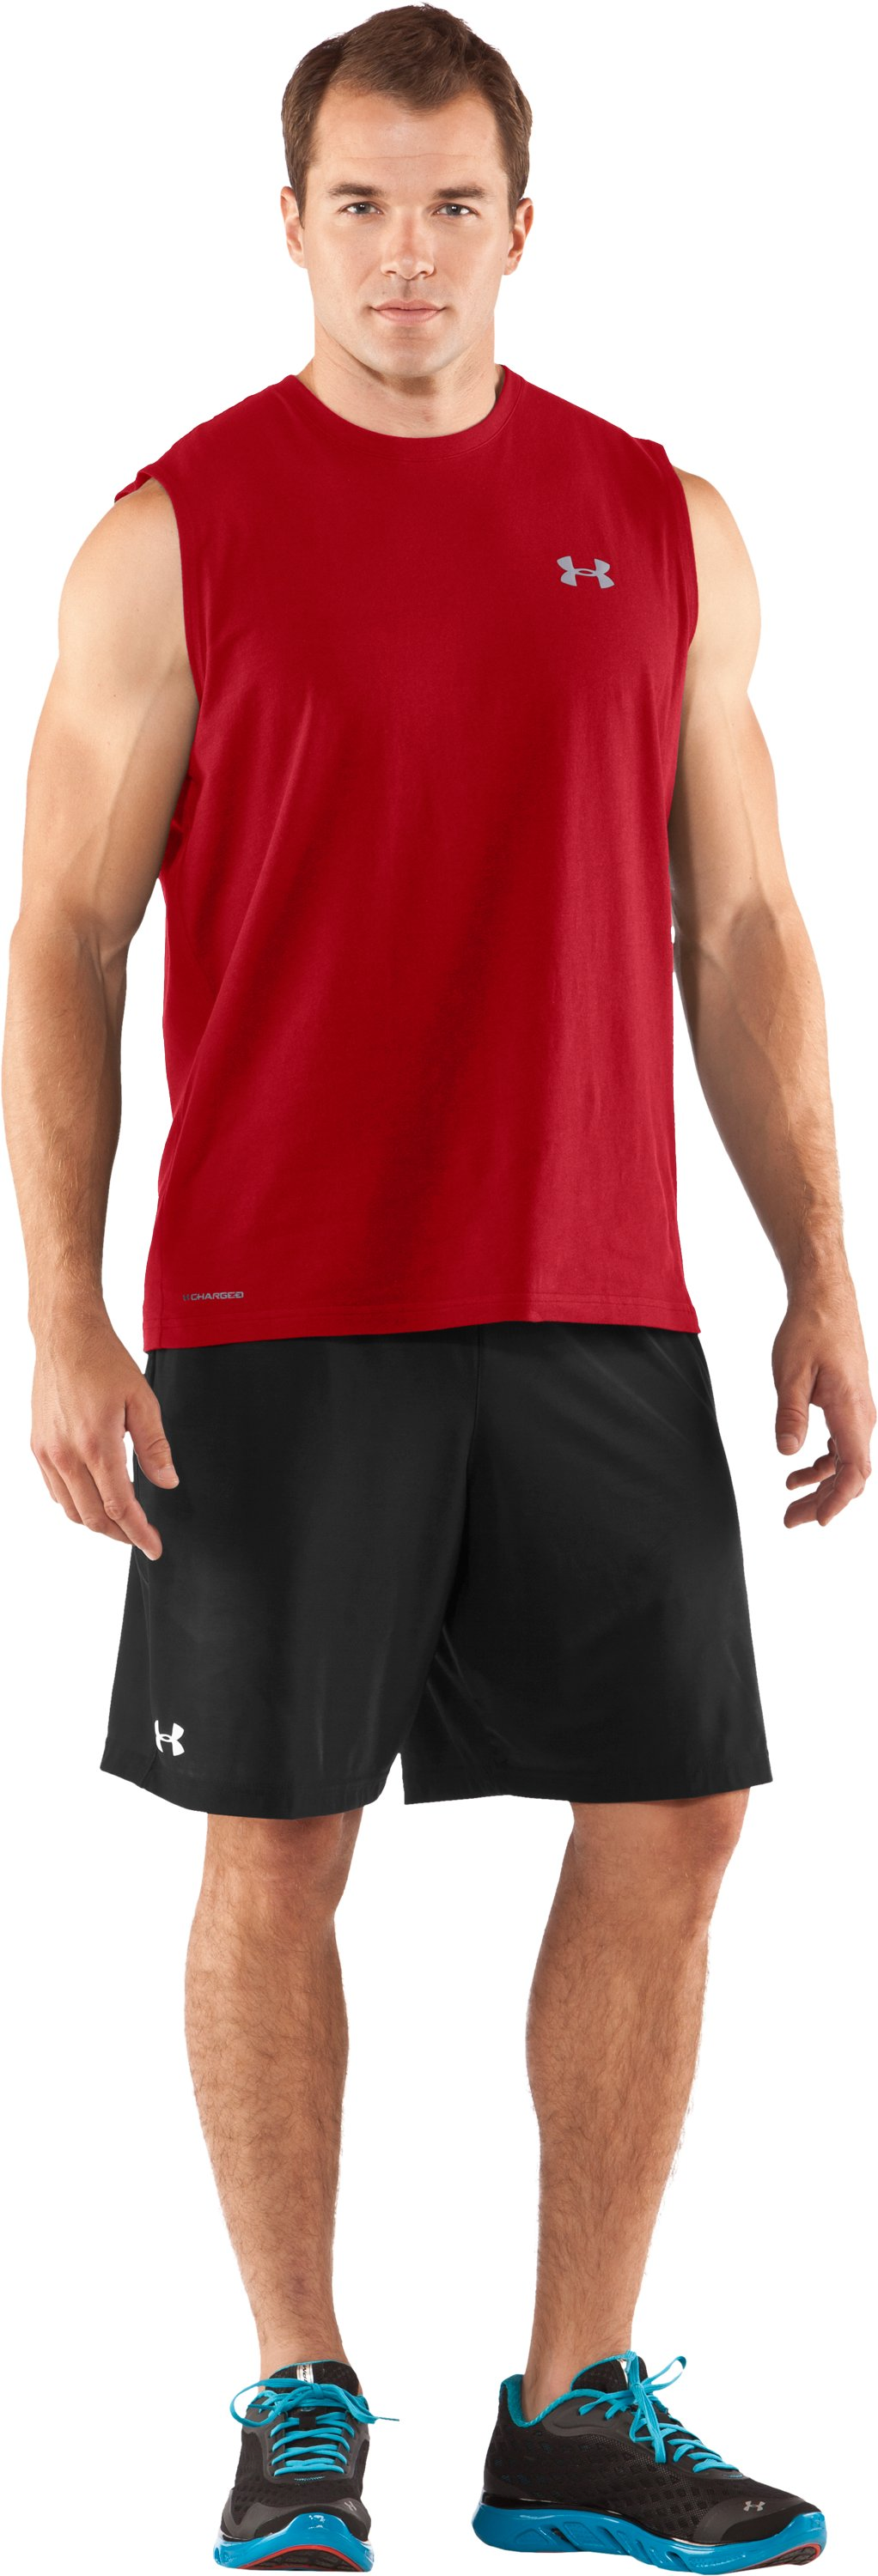 Men's Charged Cotton® Sleeveless T-shirt, Red, zoomed image